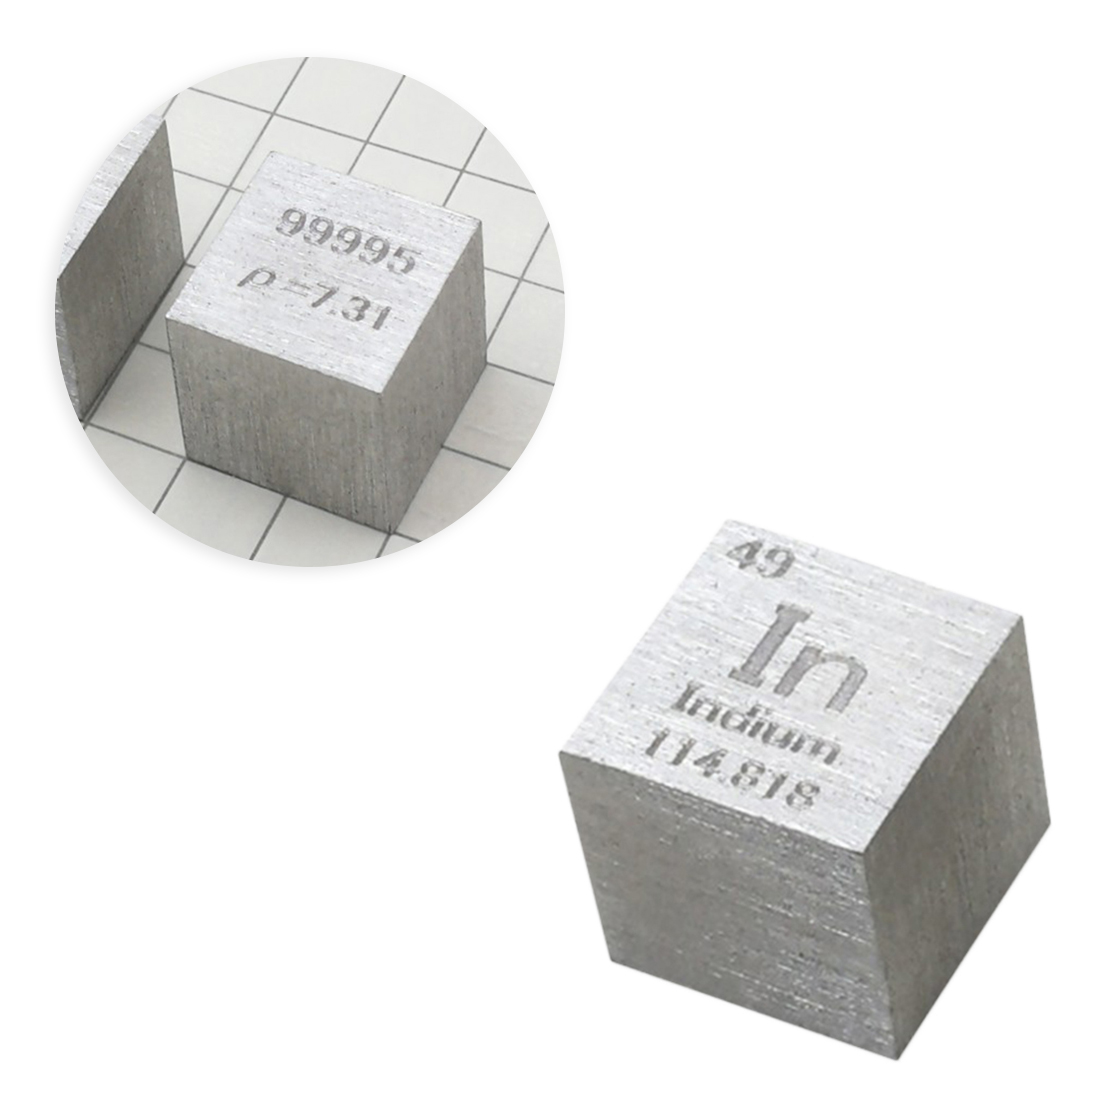 10 X 10 X 10mm Wiredrawing Indium Cube Periodic Table Of Elements Cube(In≥99.995%)